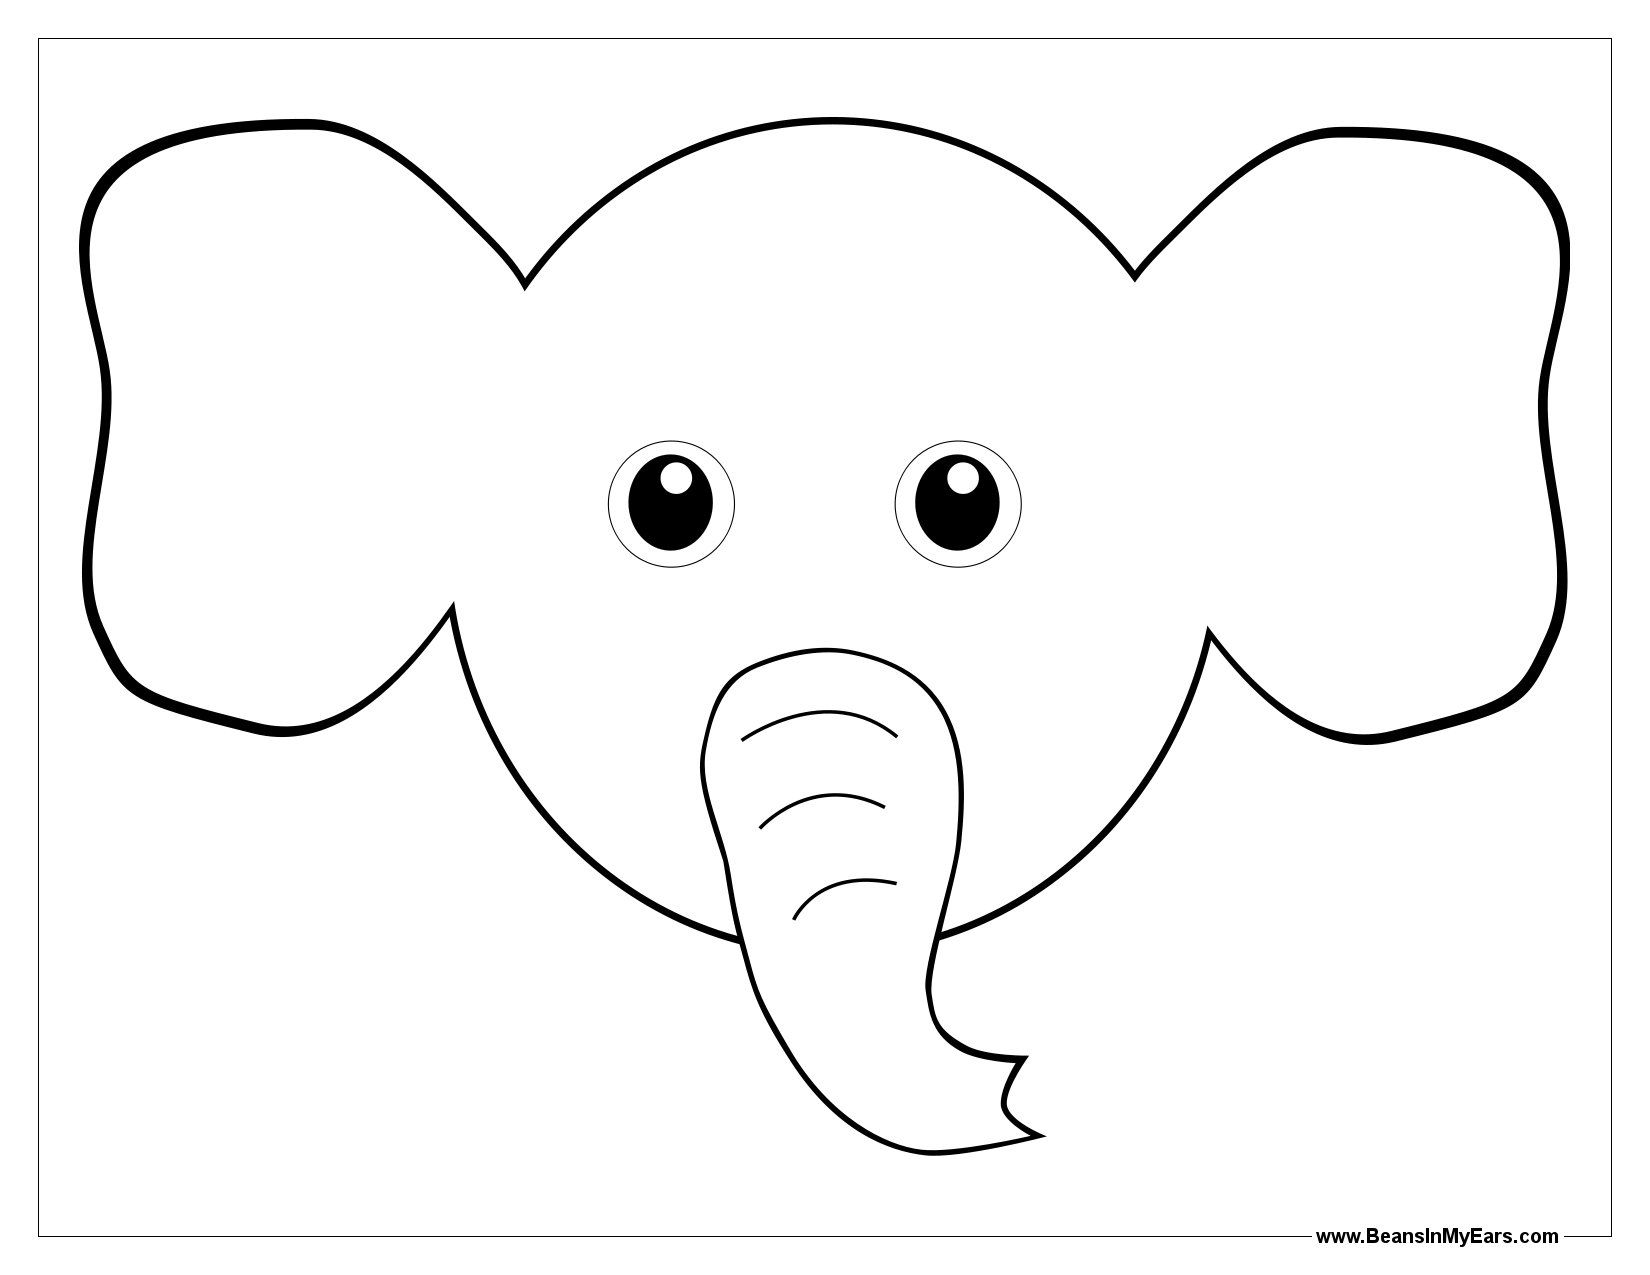 Coloring Pages Elephant Face